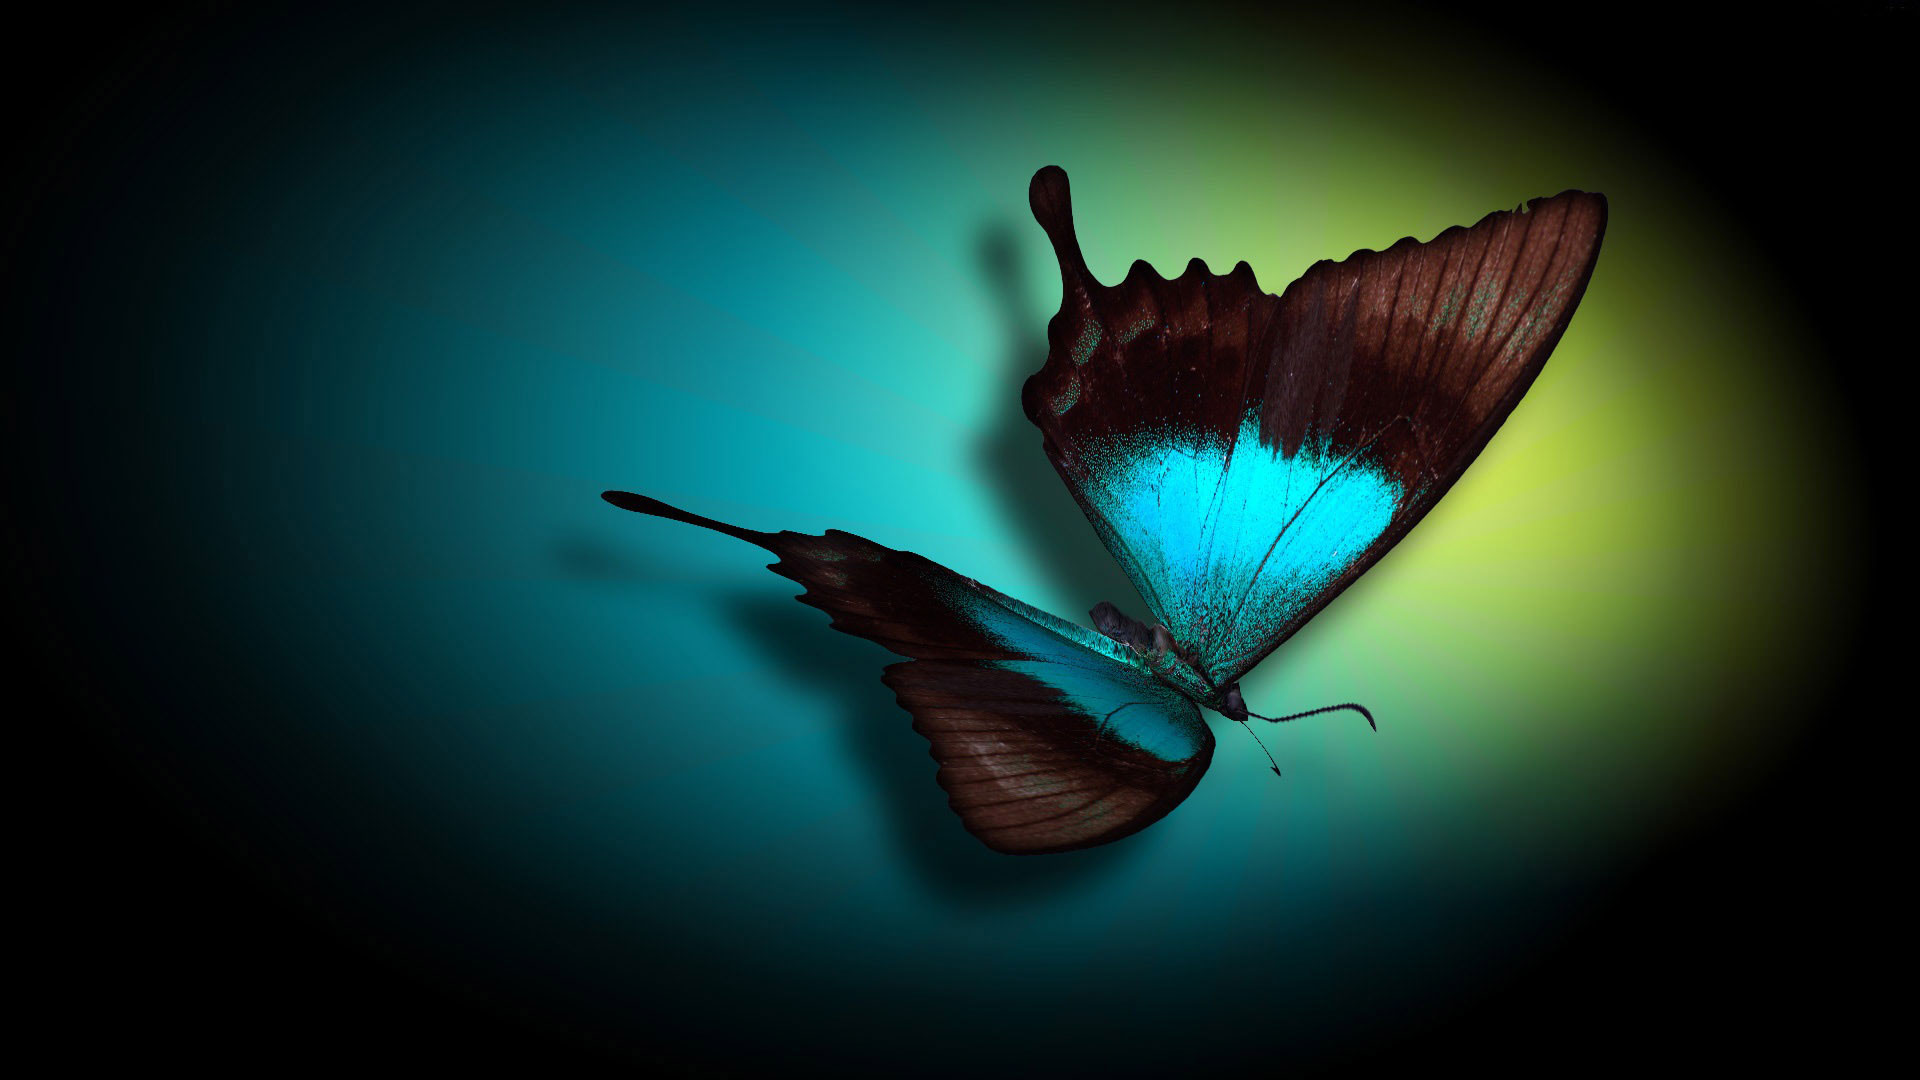 Download Desktop Nightfly Computers Computer Backgrounds Wallpaper